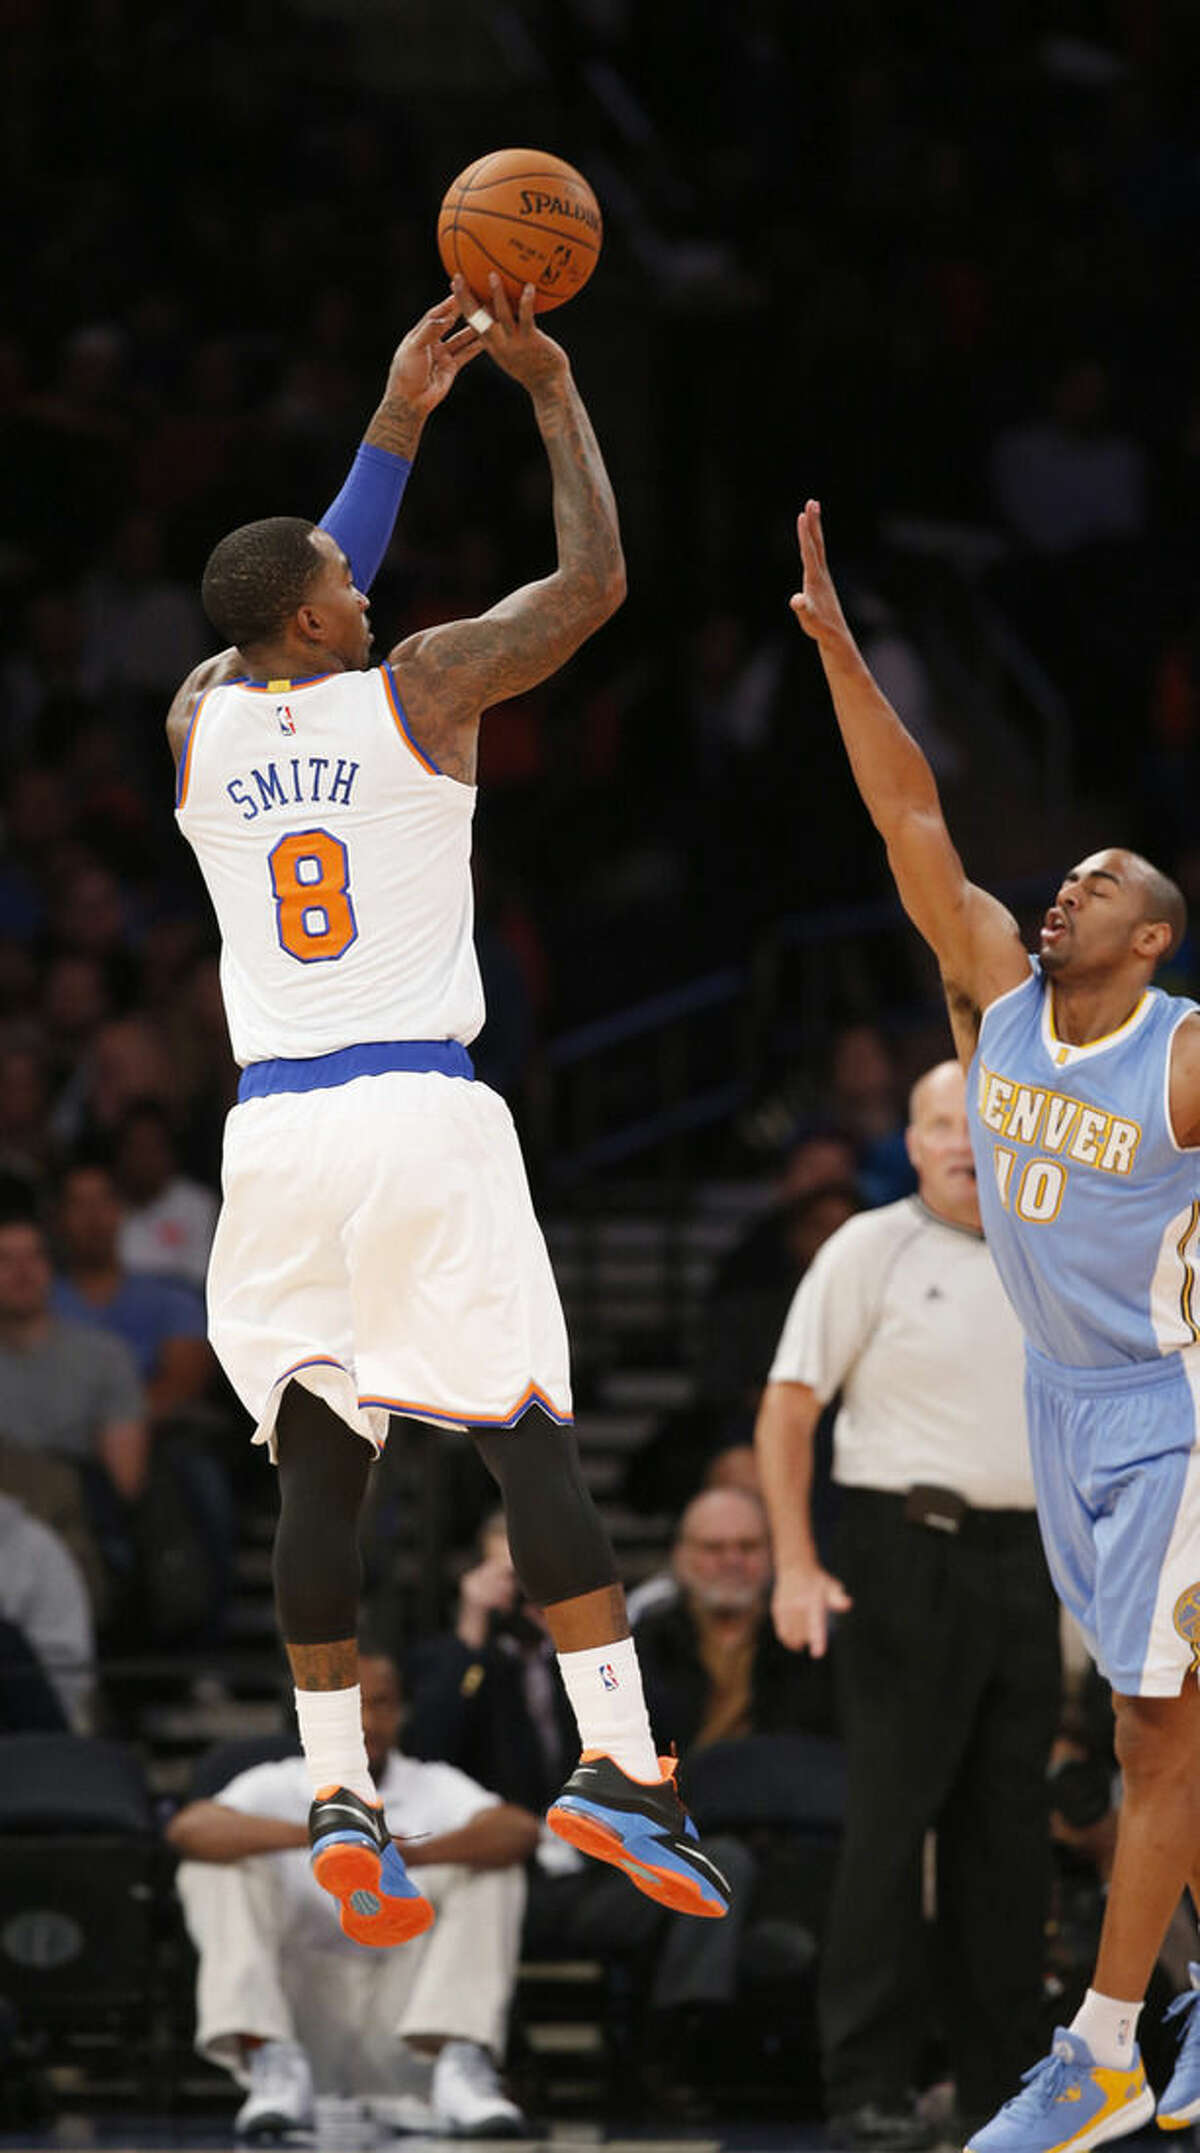 New York Knicks guard J.R. Smith (8) shoots over the defense of Denver Nuggets guard Arron Afflalo (10) in the first half of an NBA basketball game in New York, Sunday, Nov. 16, 2014. (AP Photo/Kathy Willens)